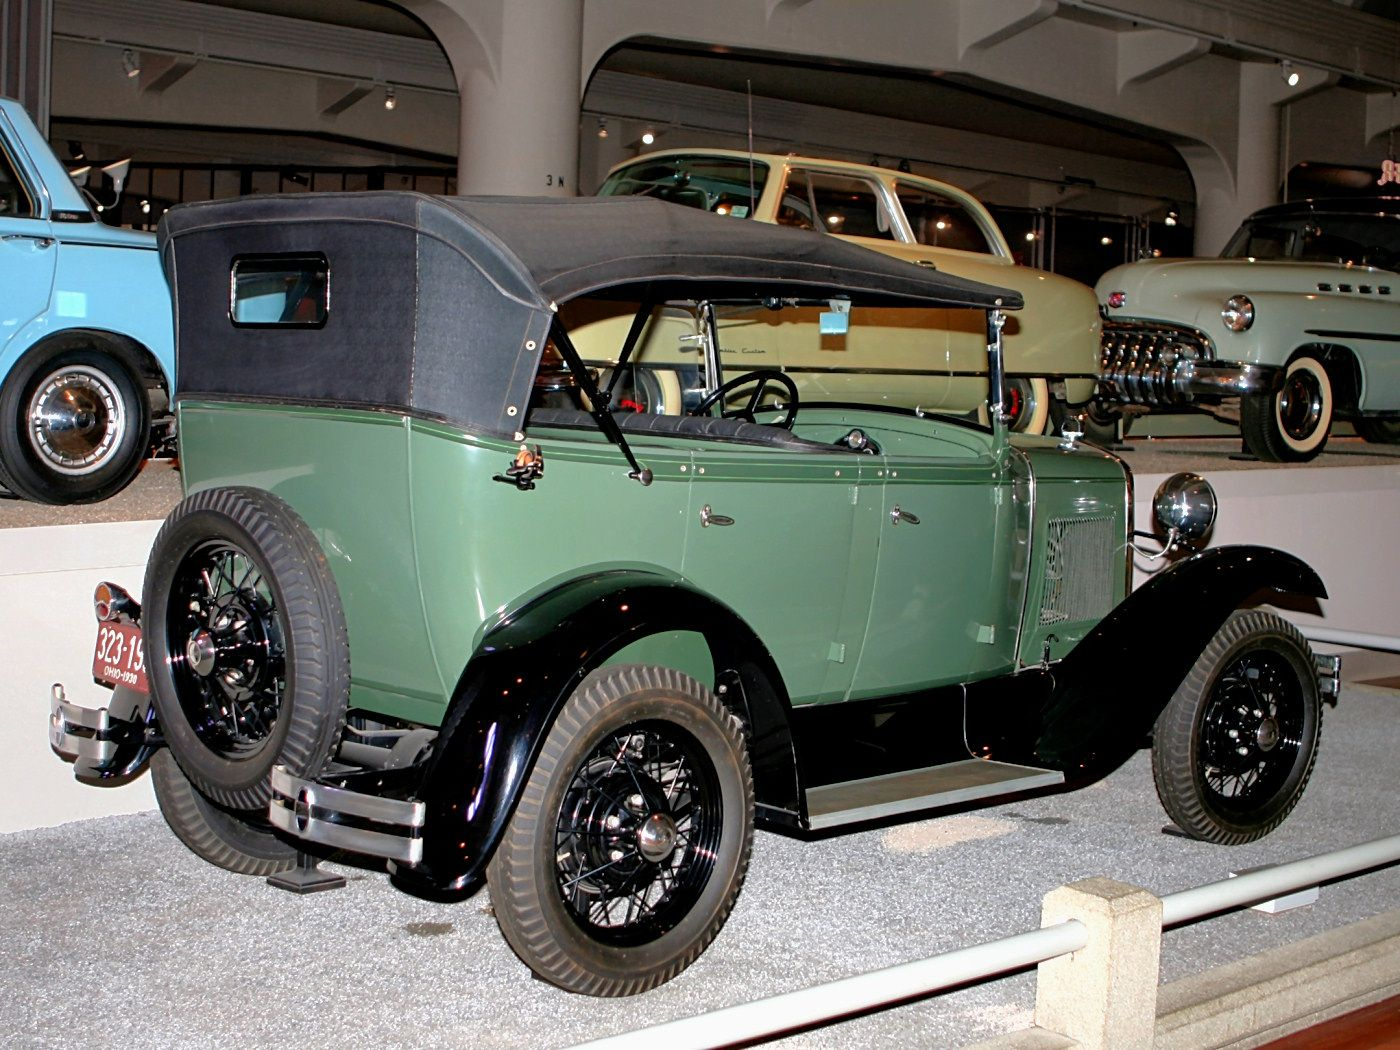 Cars 1930 Ford Model A Phaeton Green Rvr H Ford Museum Cl Ford Models Old Classic Cars Ford